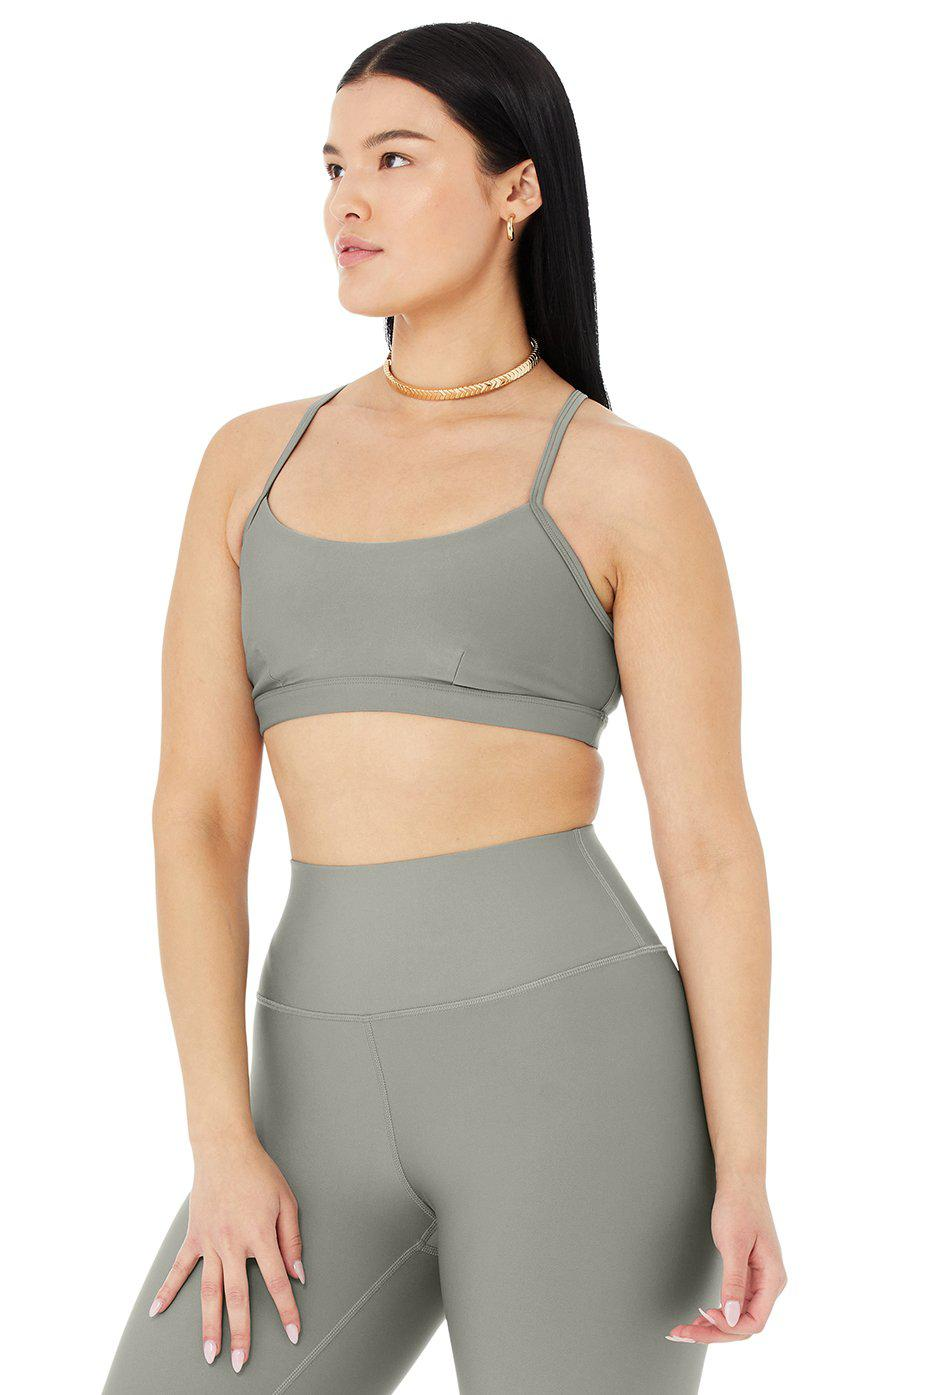 Airlift Intrigue Bra - Sterling 5